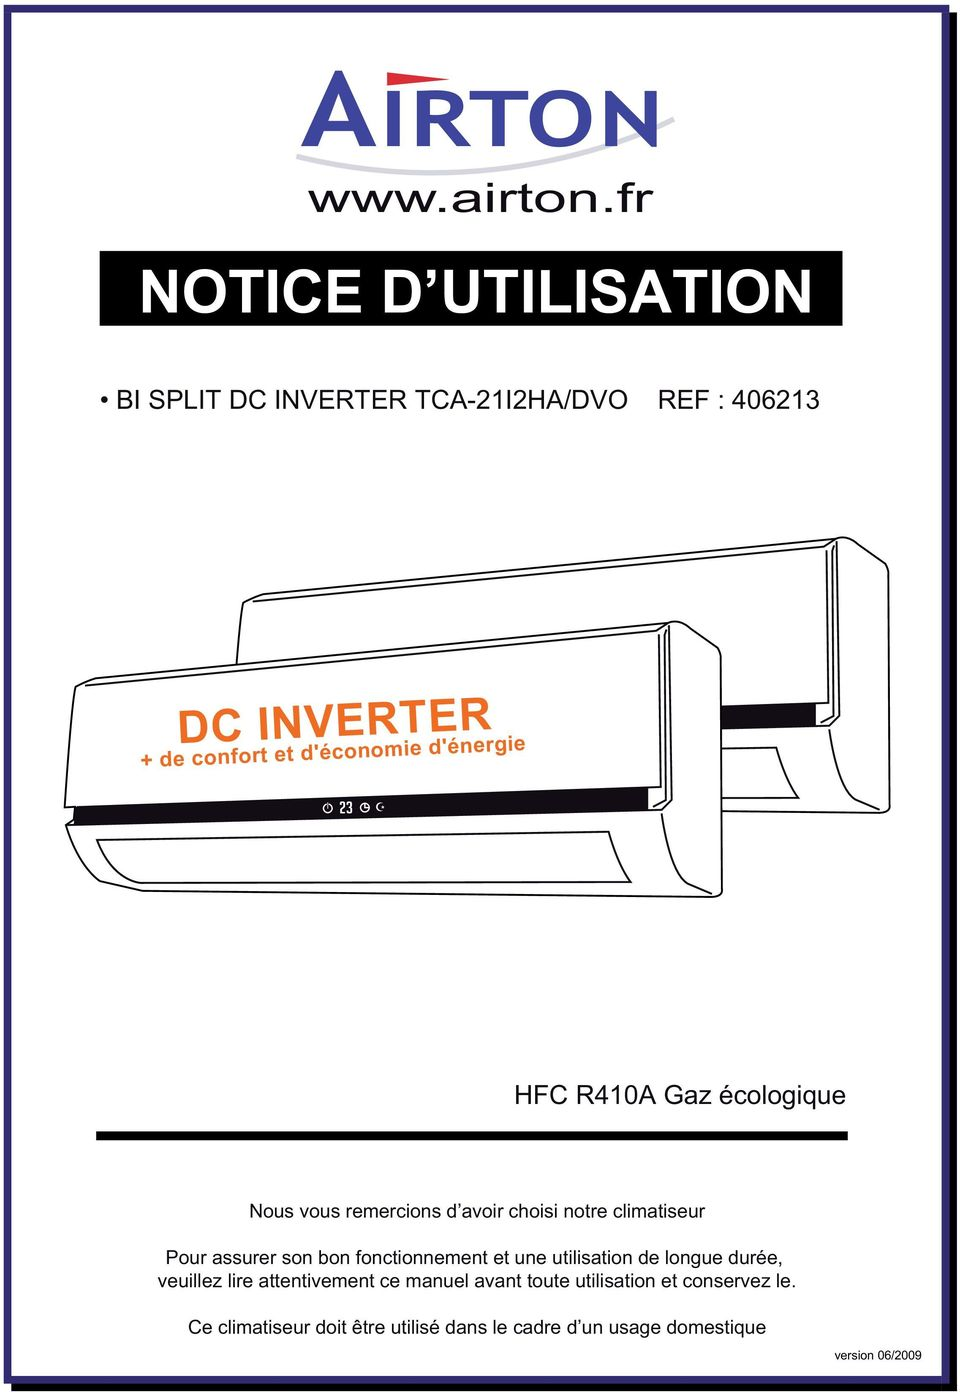 notice d utilisation bi split dc inverter tca 21i2ha dvo ref nous vous remercions d avoir. Black Bedroom Furniture Sets. Home Design Ideas